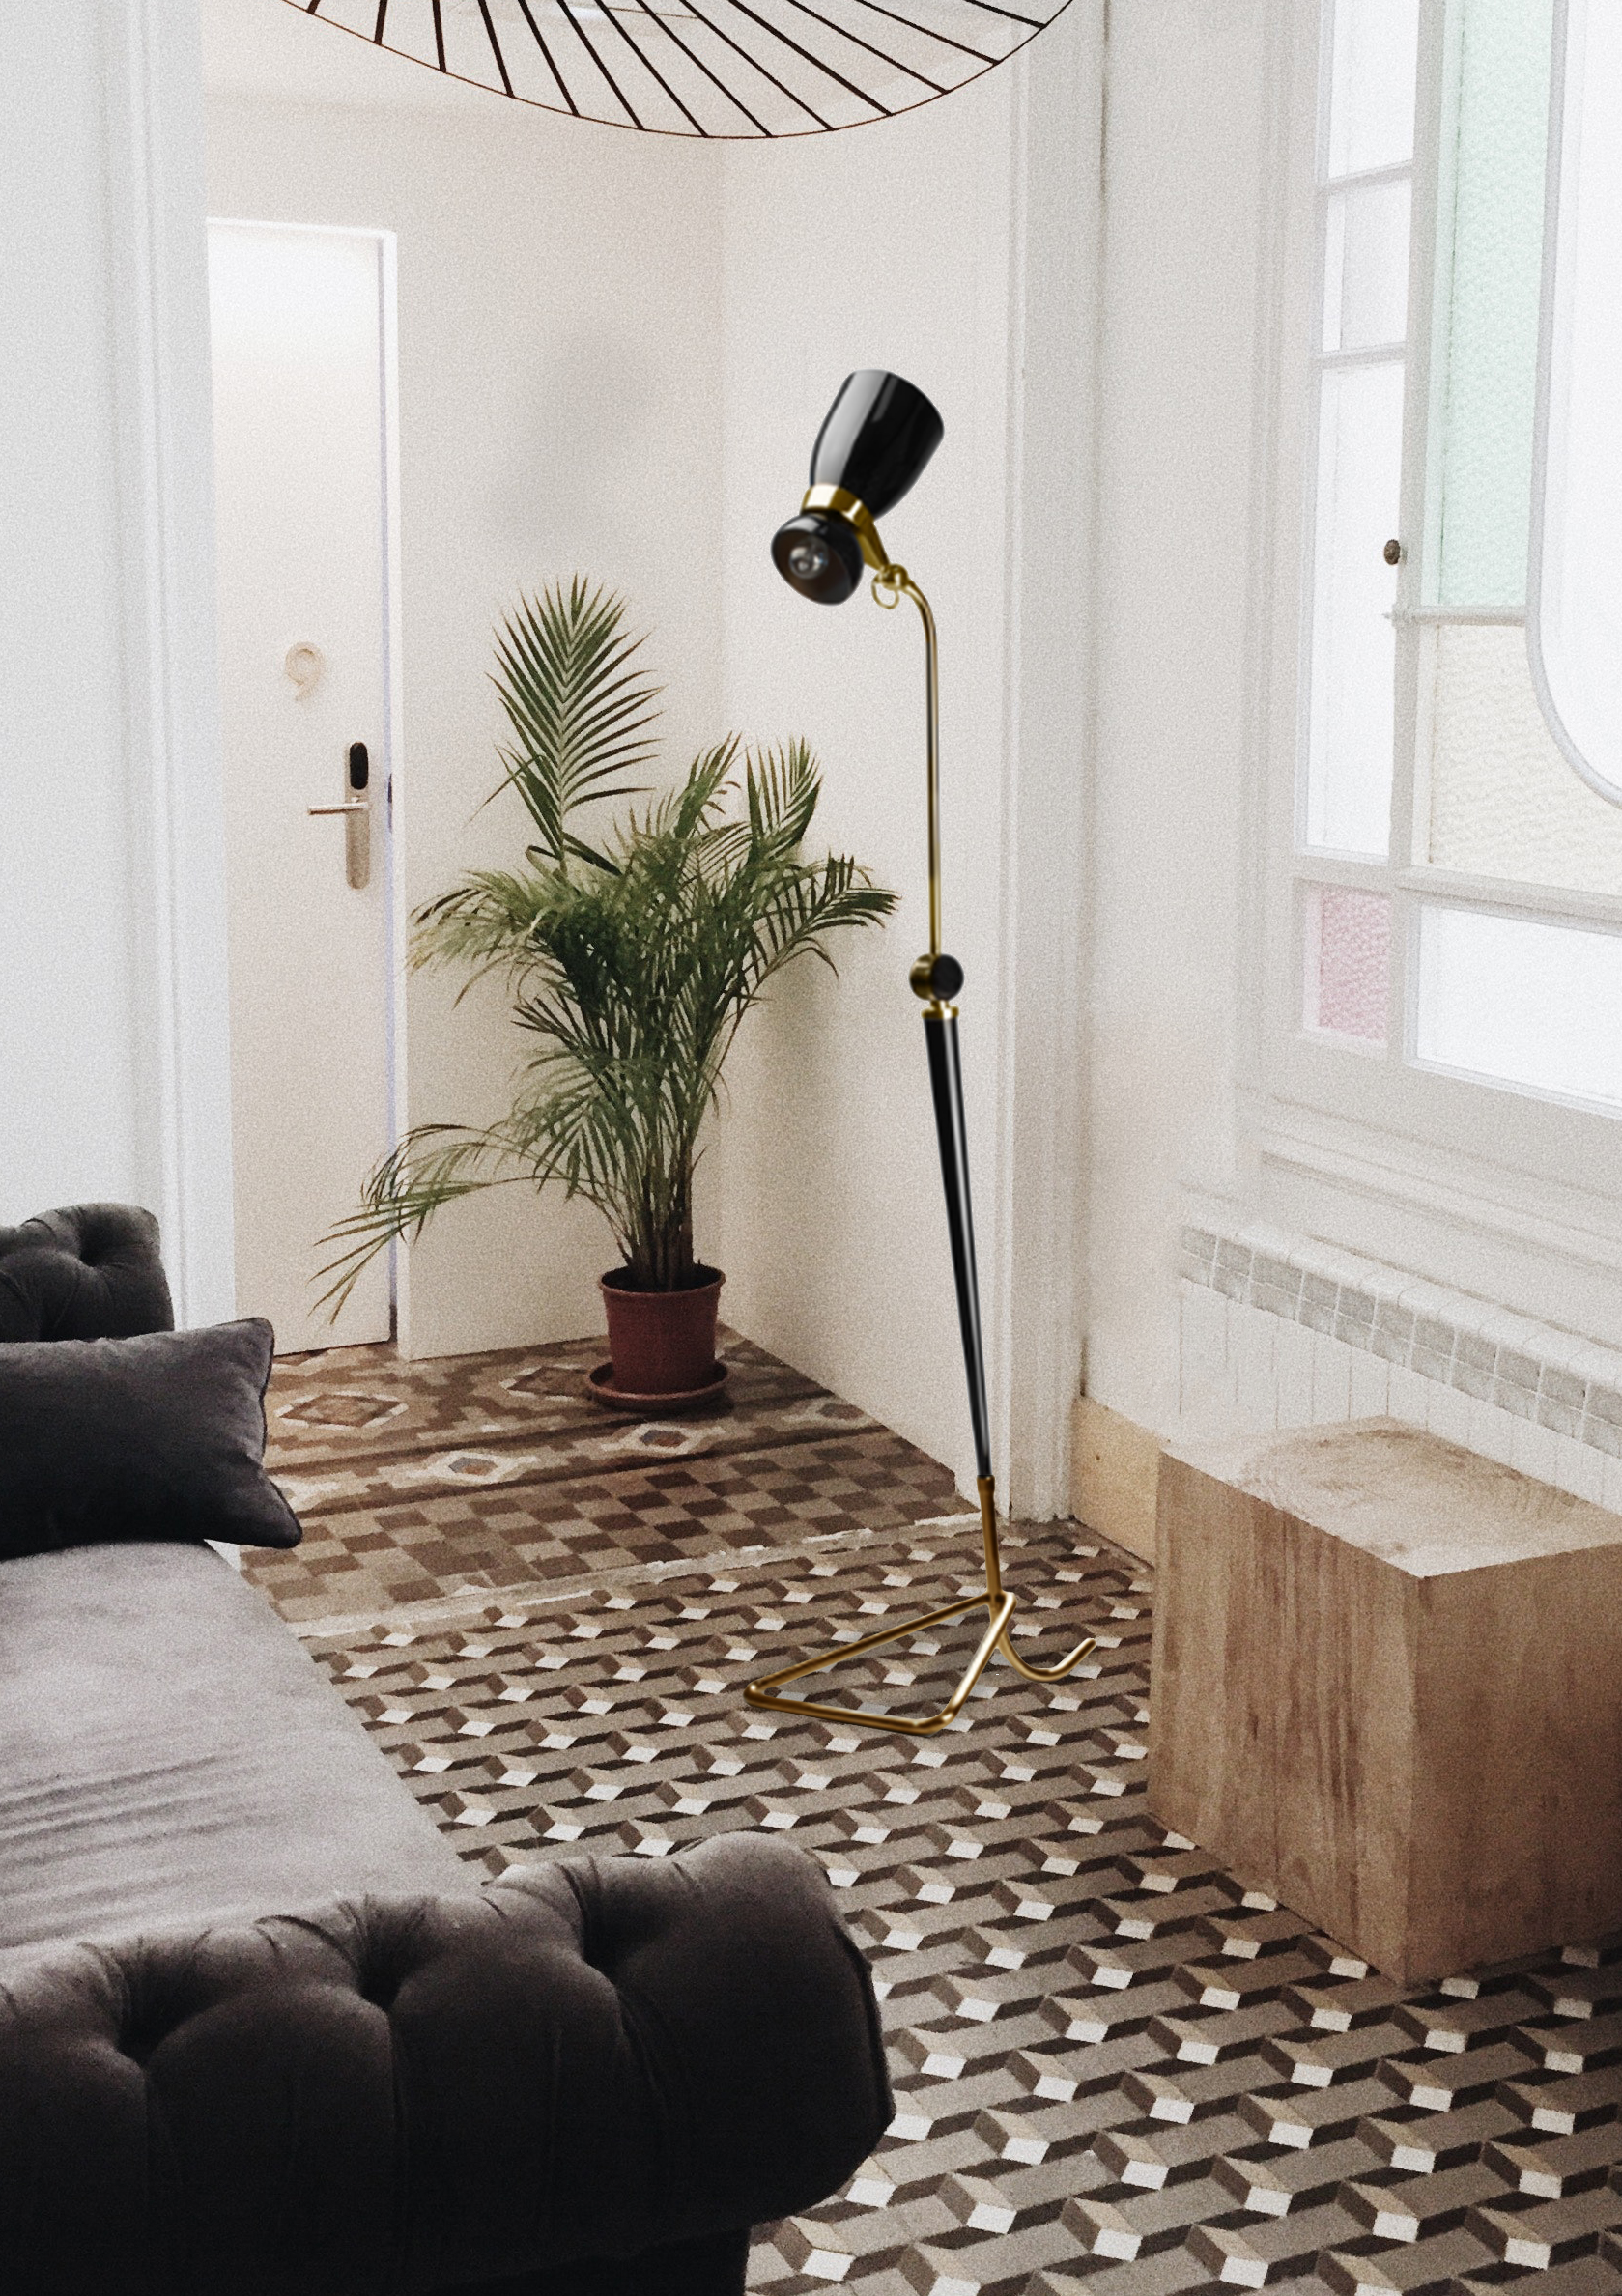 💲💲💲 Best Deals: Floor Lamps For A Private Moment With Your Book 📚 (And Thoughts!) book 💲💲💲 Best Deals: Floor Lamps For A Private Moment With Your Book 📚 (And Thoughts!) 2 13